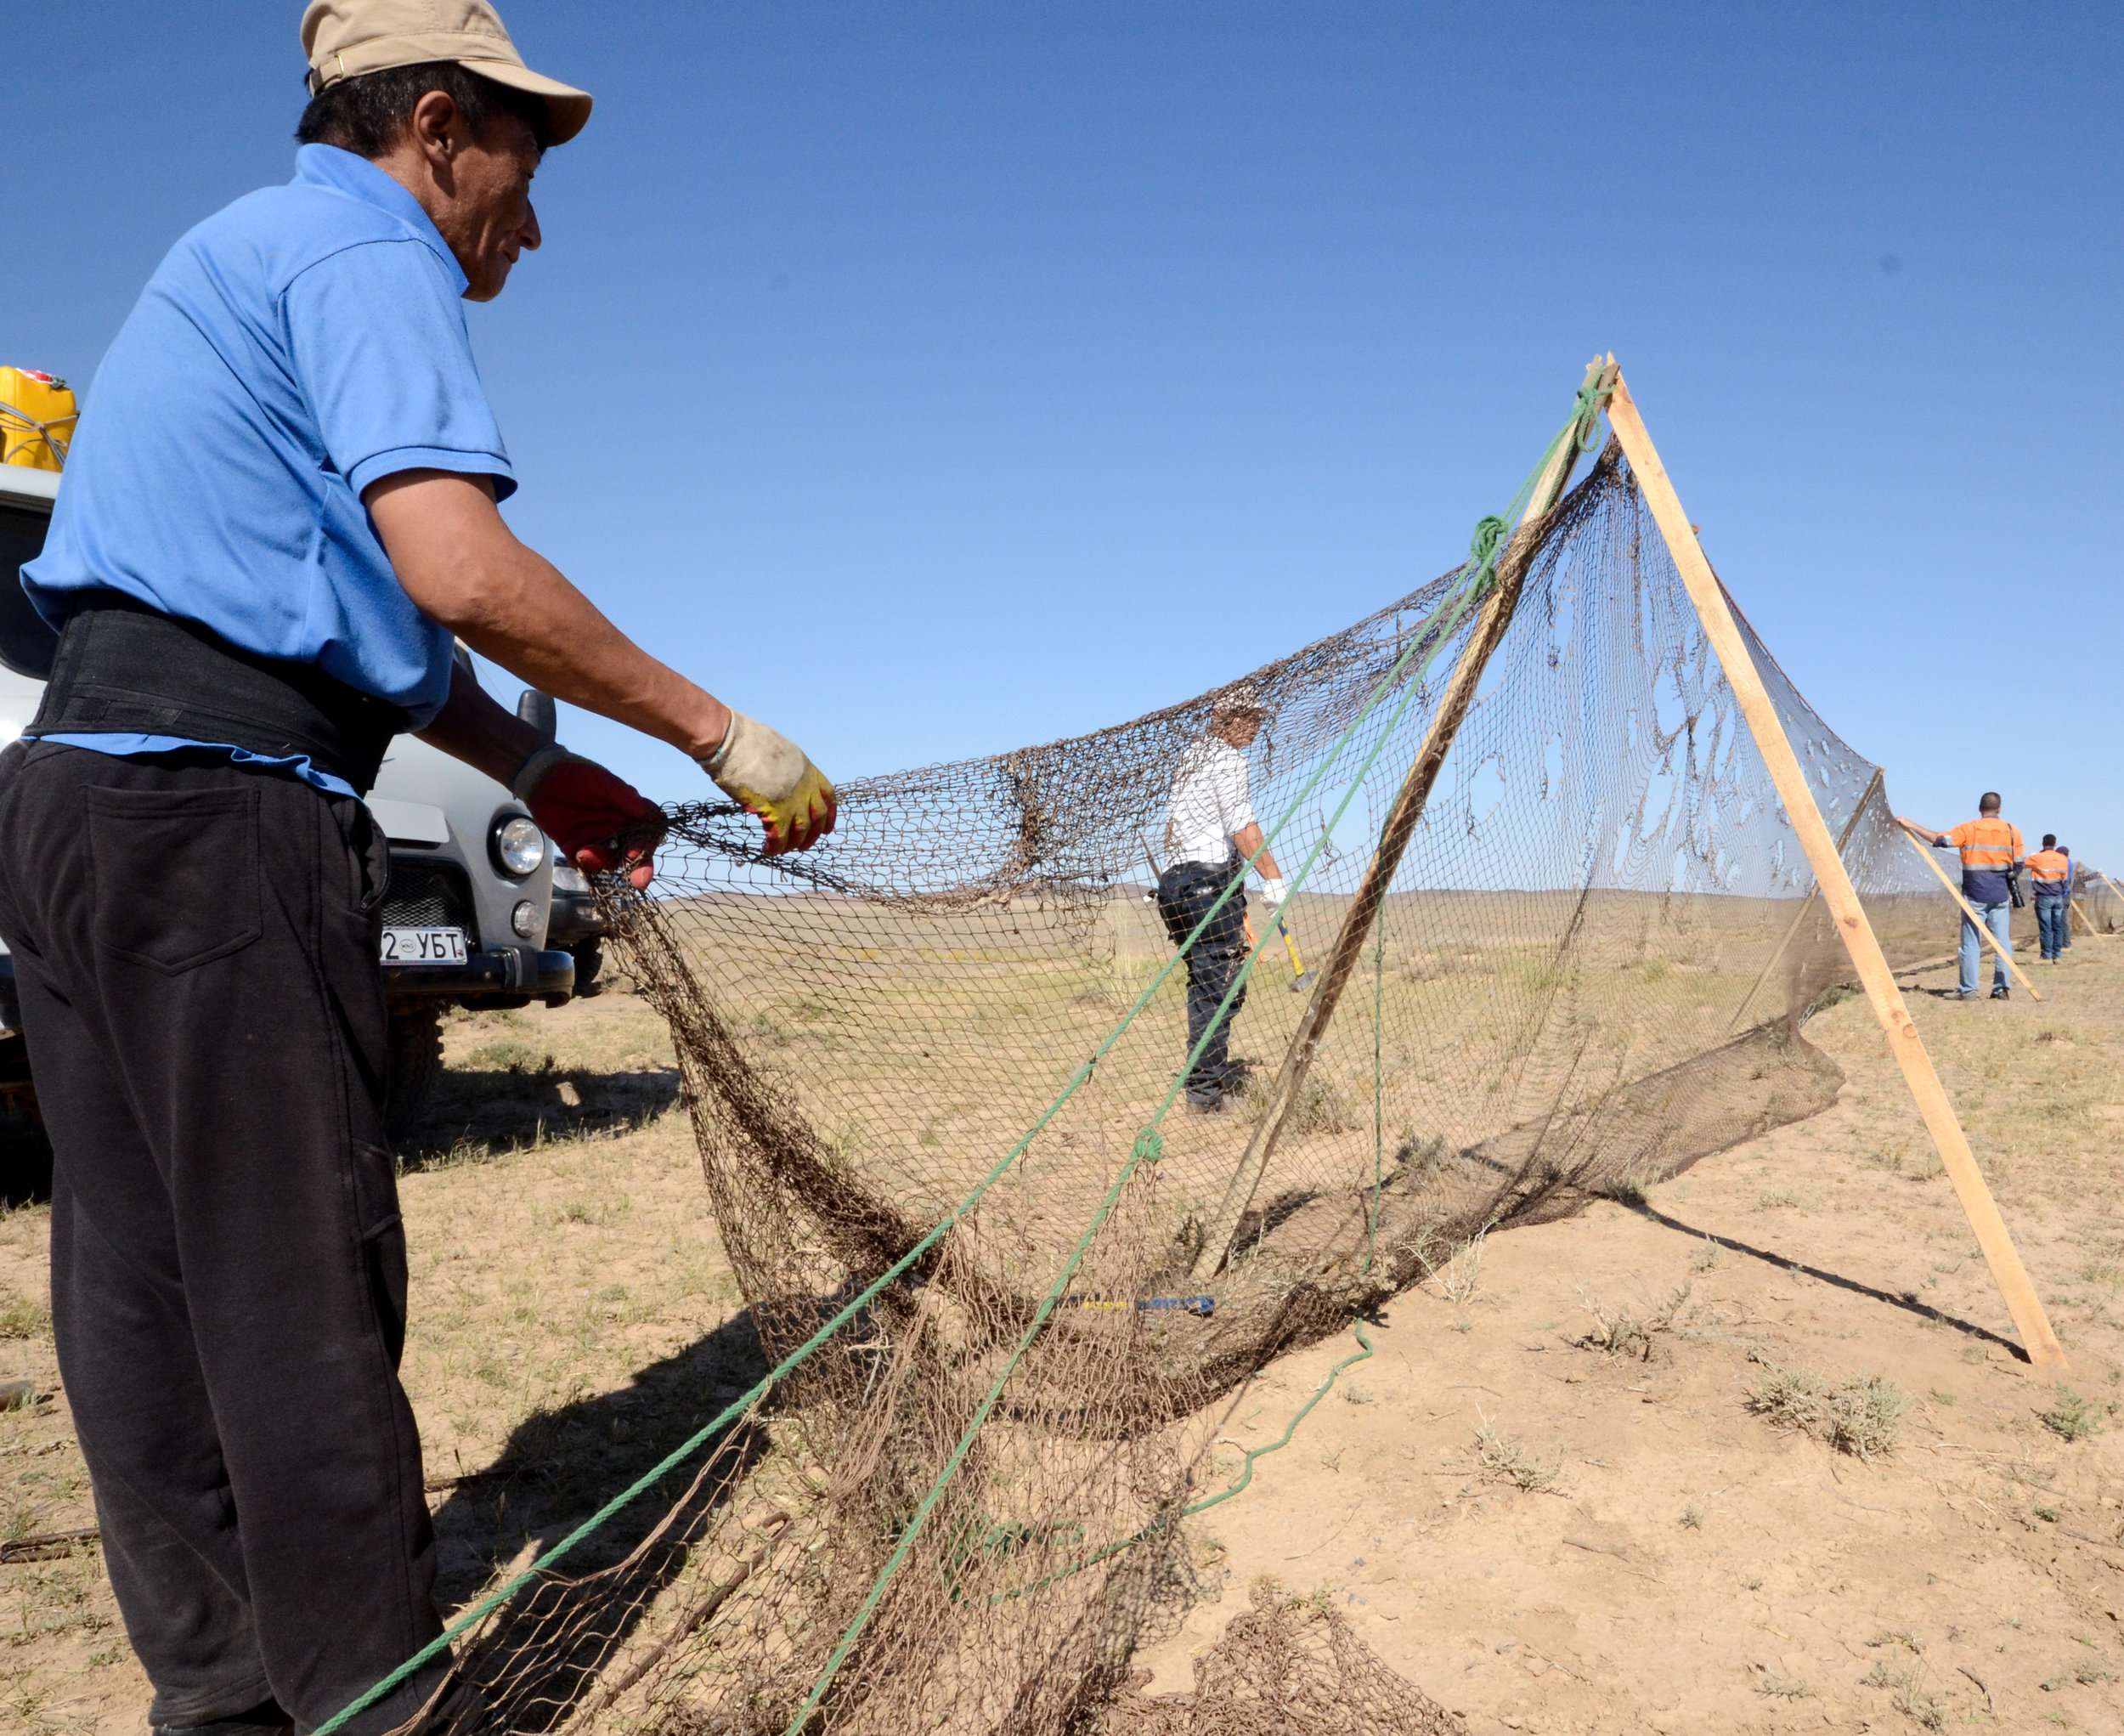 Representatives from Wildlife Conservation Society and Oyu Tolgoi set a drift net to catch and then satellite collar Mongolian Gazelle as part of the Oyu Tolgoi biodiversity monitoring program.